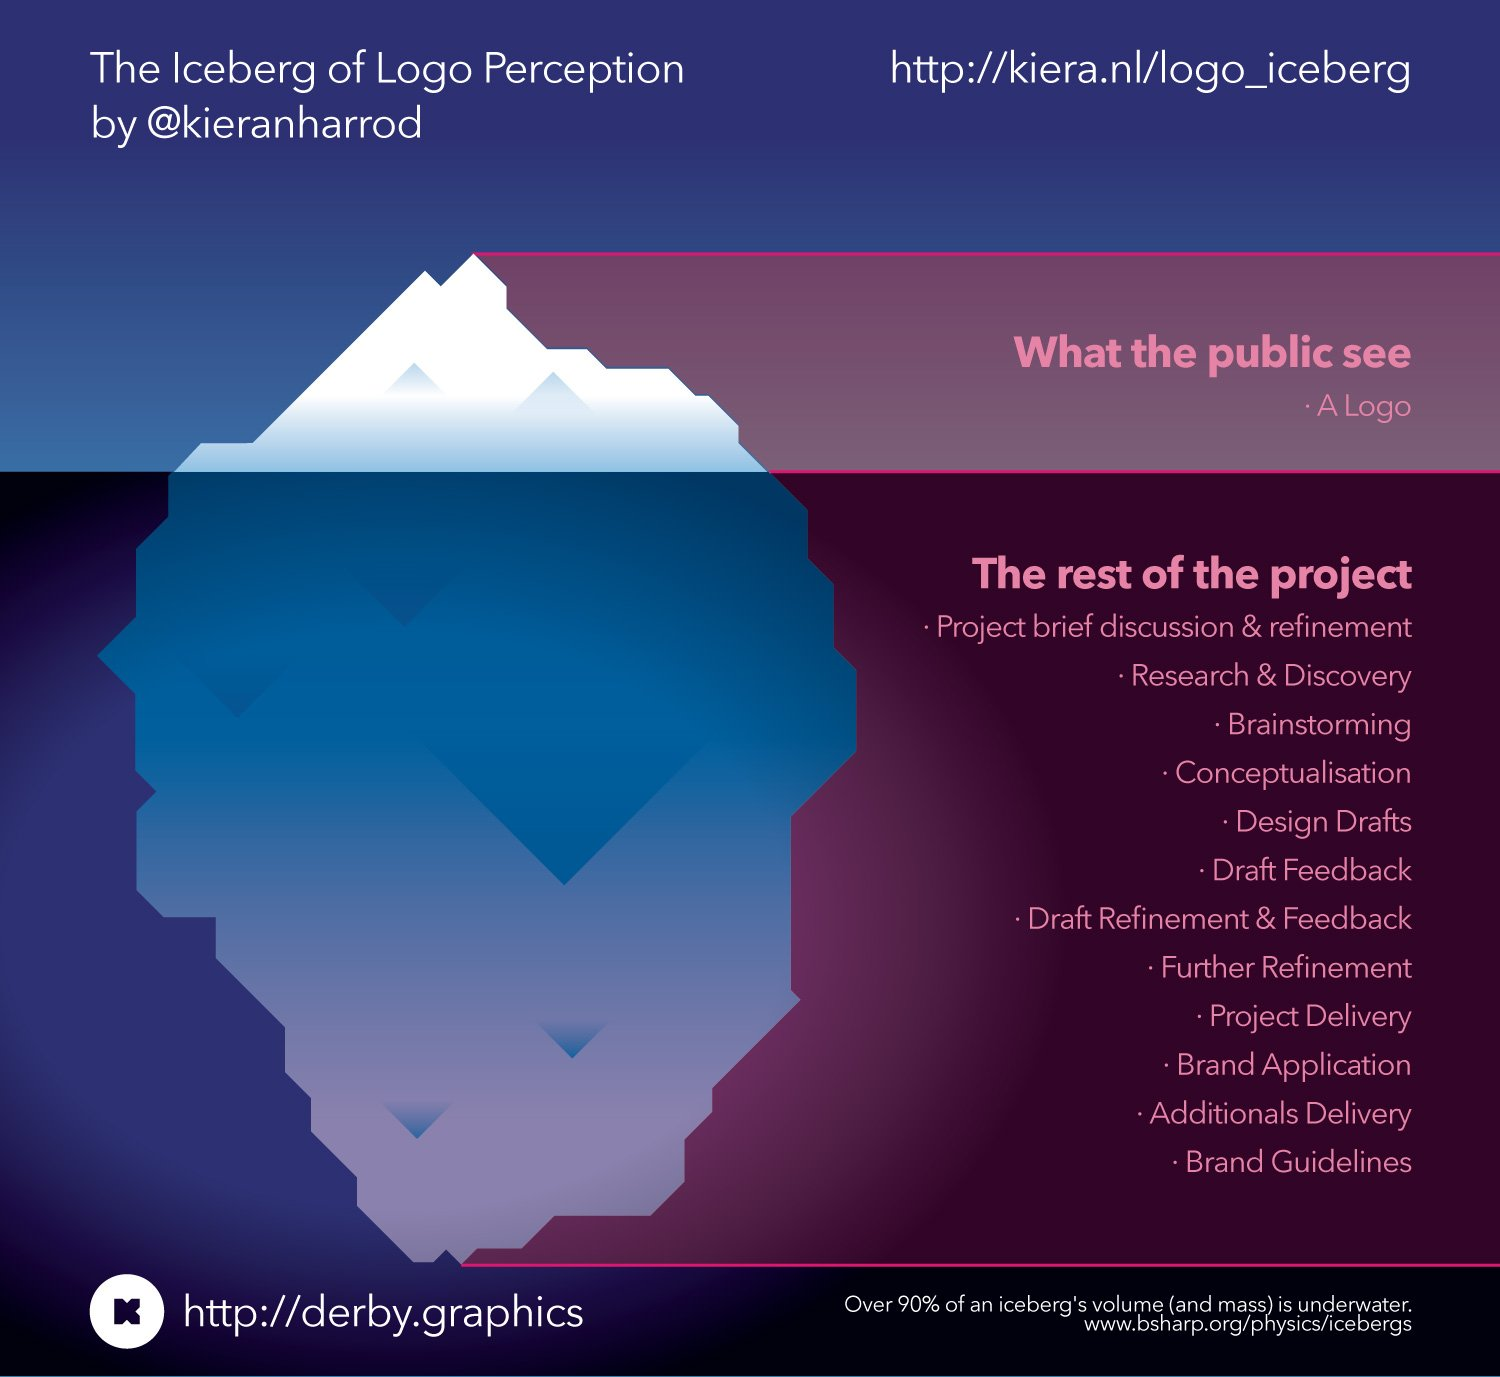 The Iceberg of Logo Perception